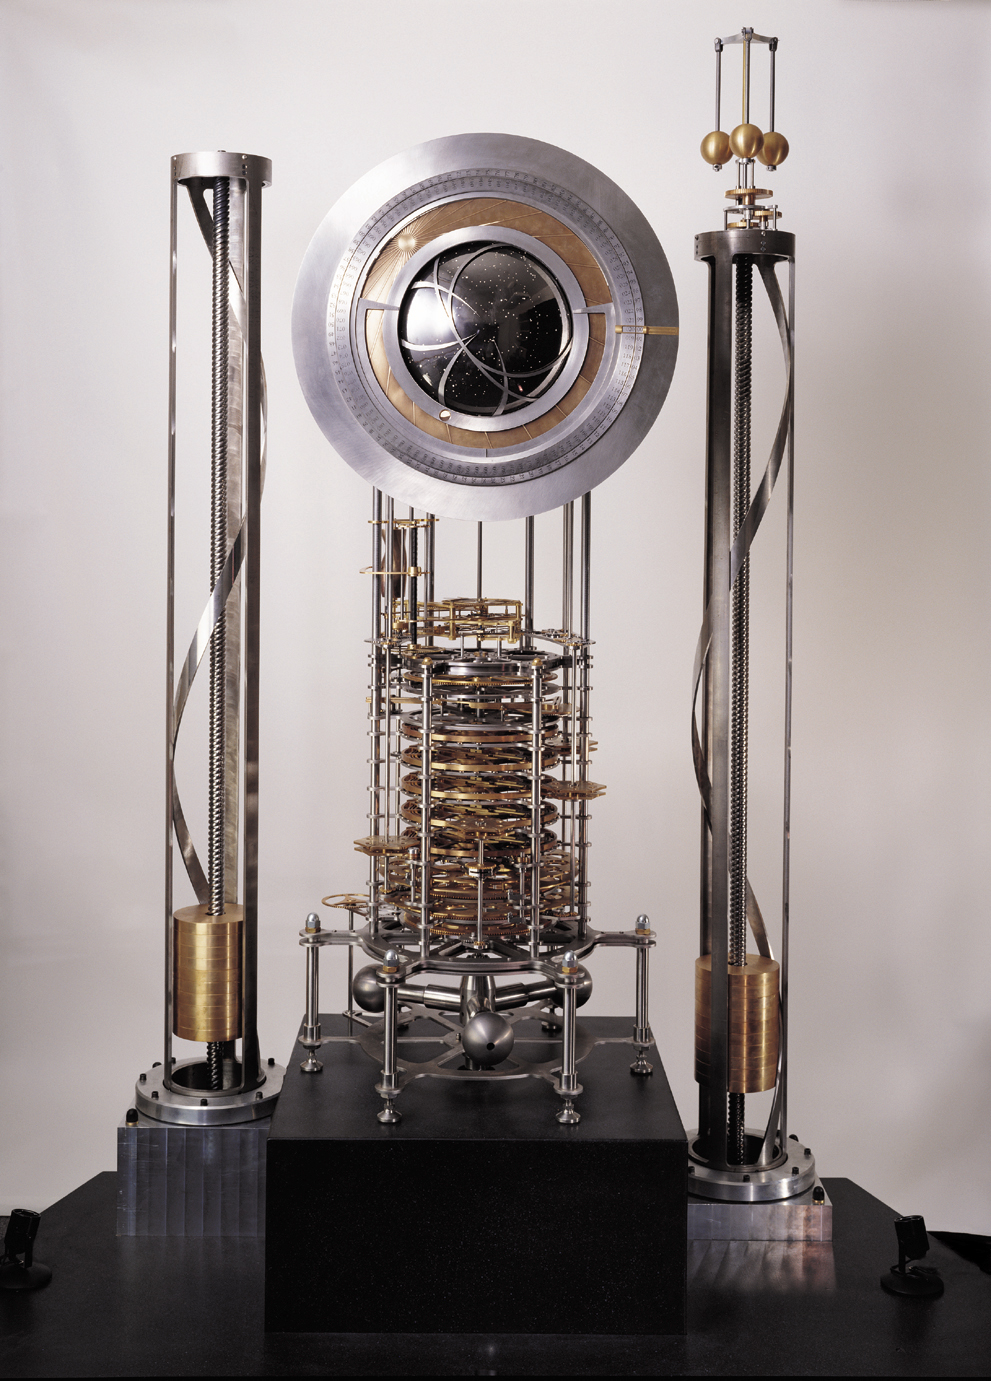 Prototype Clock of the Long Now, By Rolfe Horn, courtesy of the Long Now Foundation